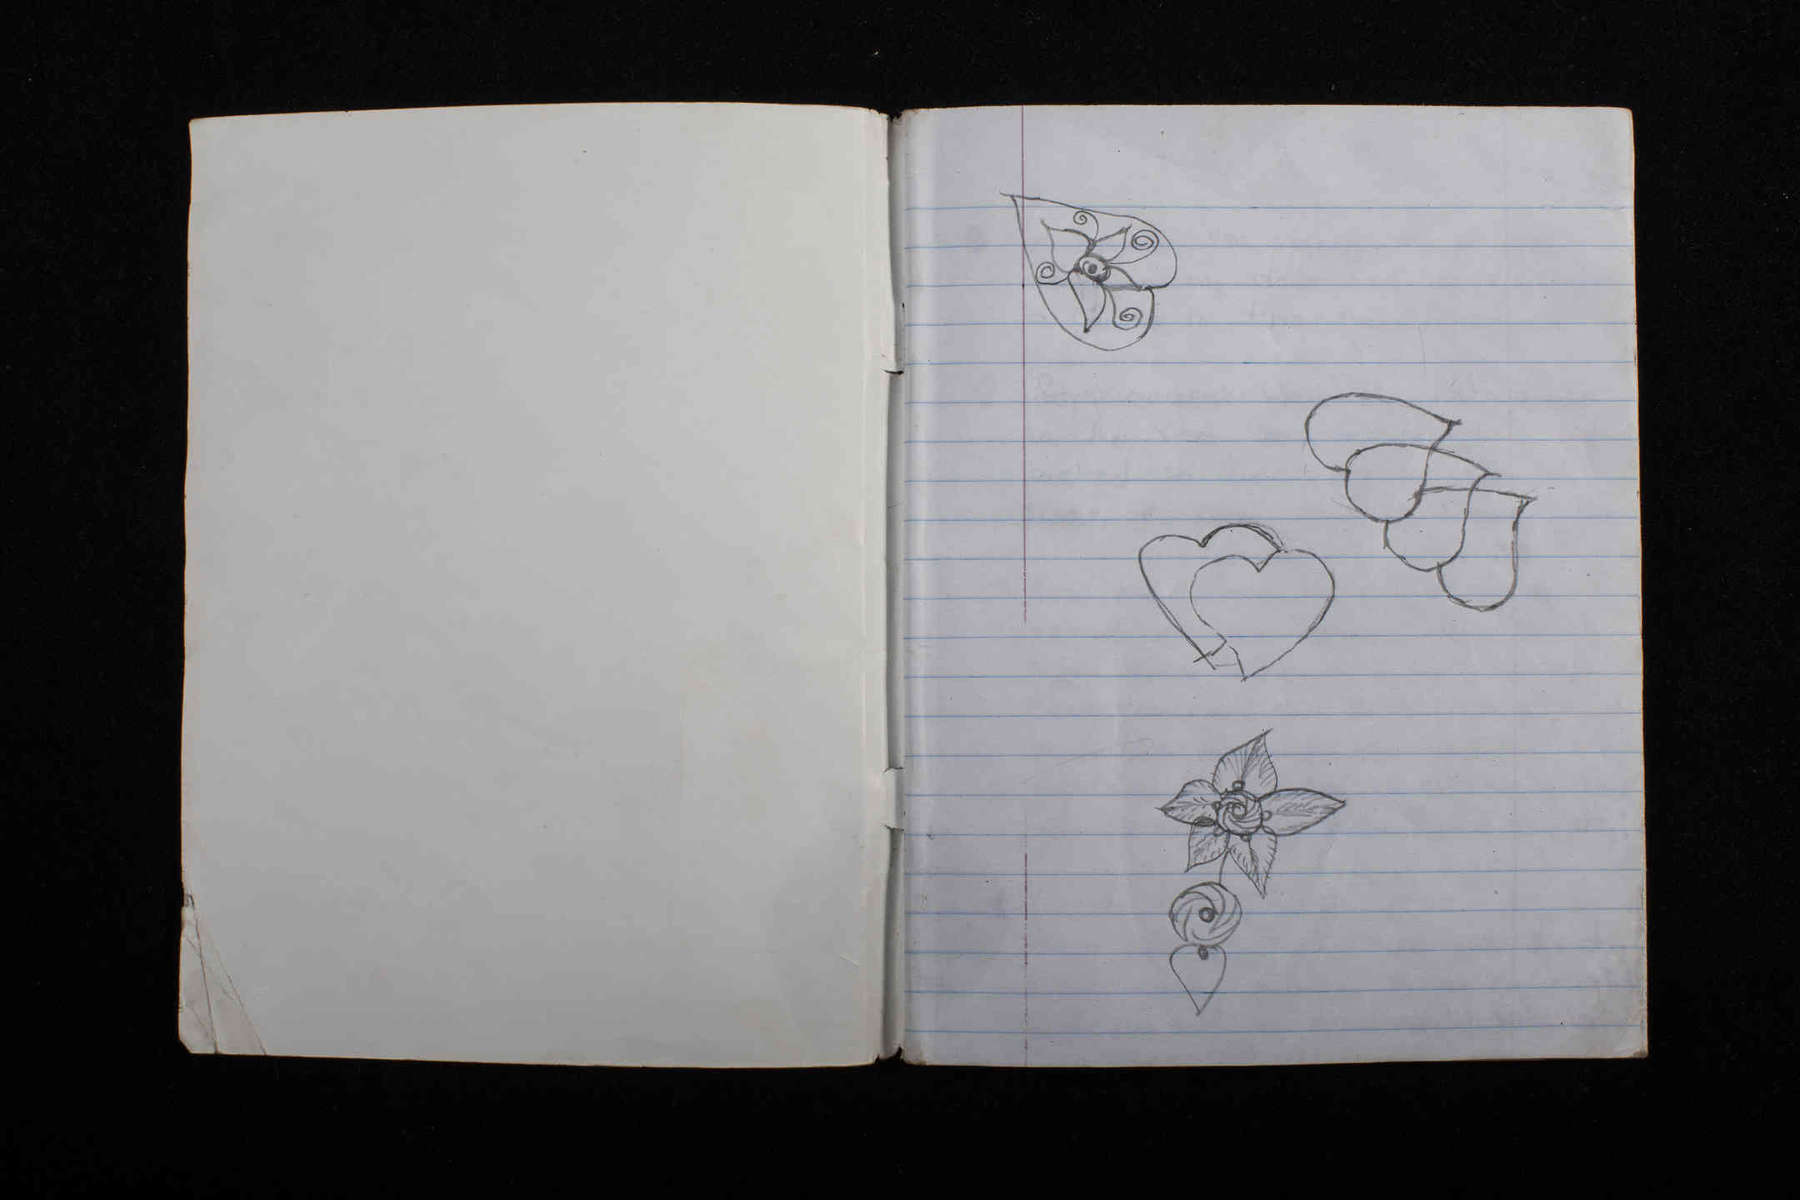 Dorcas draws hearts on the first page of her notebook.